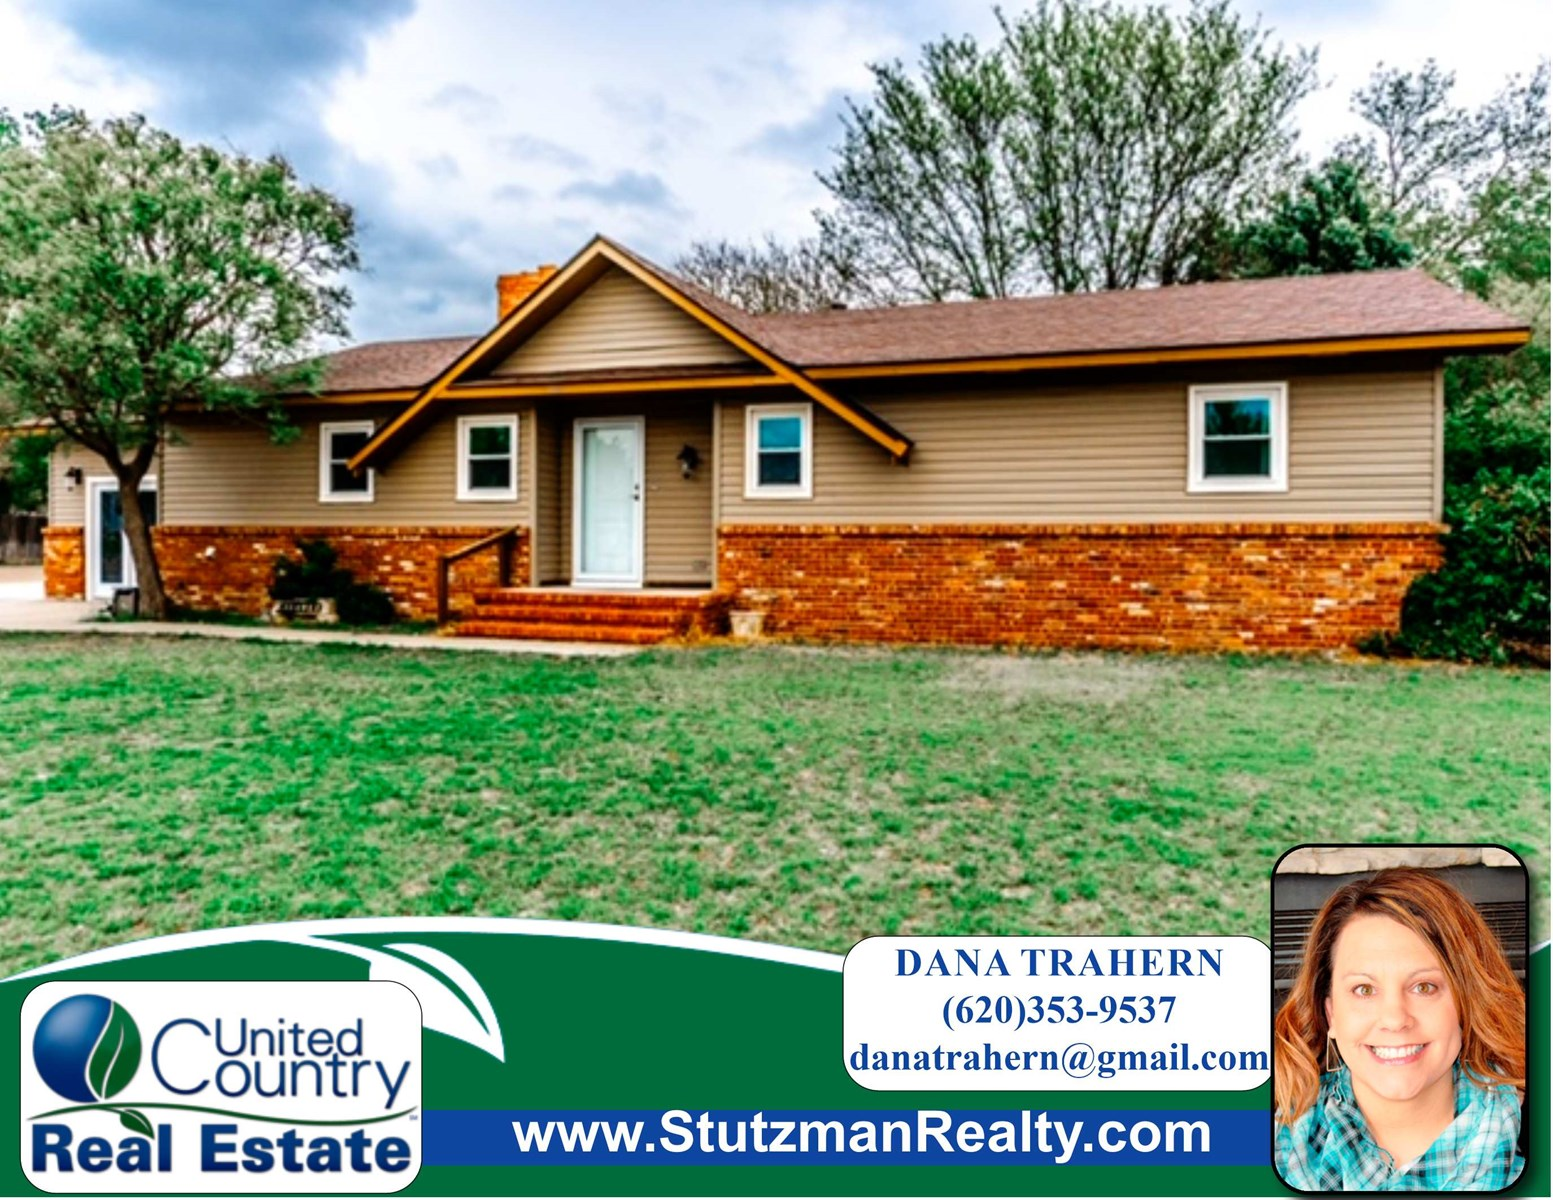 MOVE-IN READY HOME FOR SALE IN ULYSSES, KS